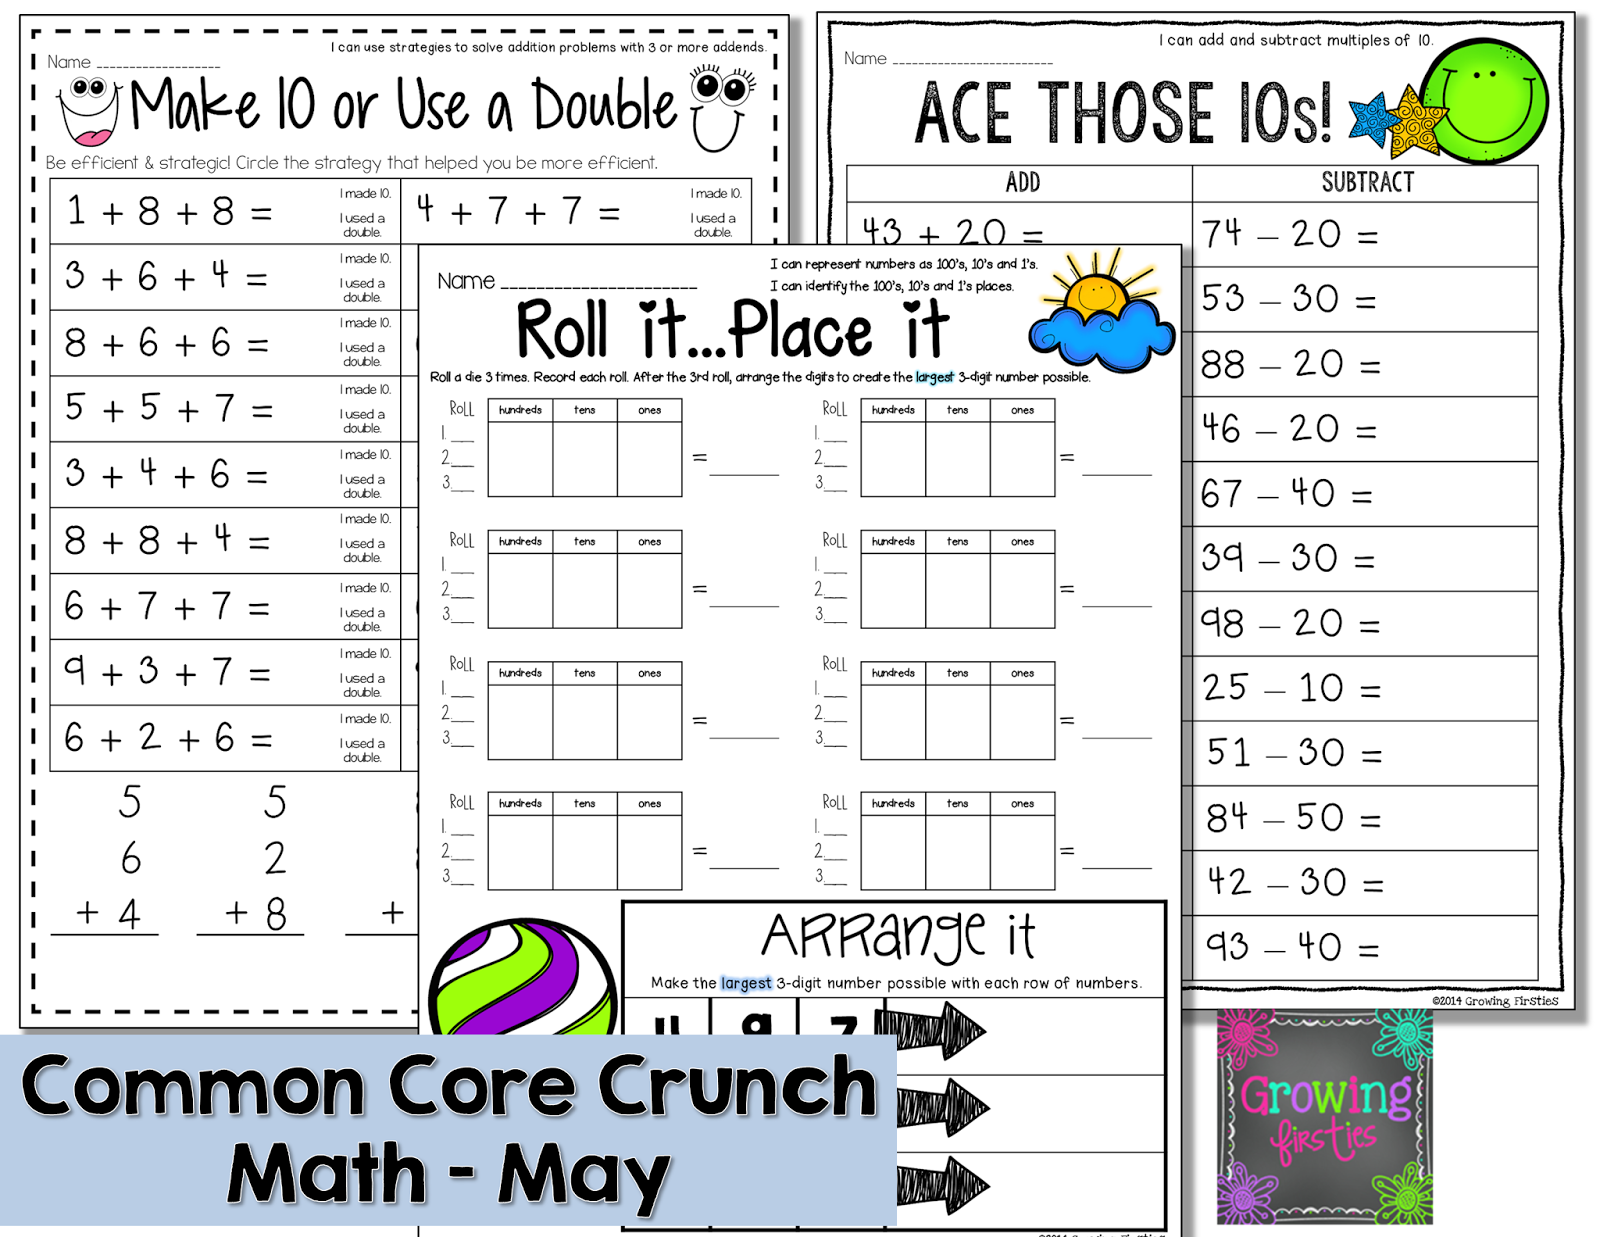 Growing Firsties - Common Core Crunch - May Math